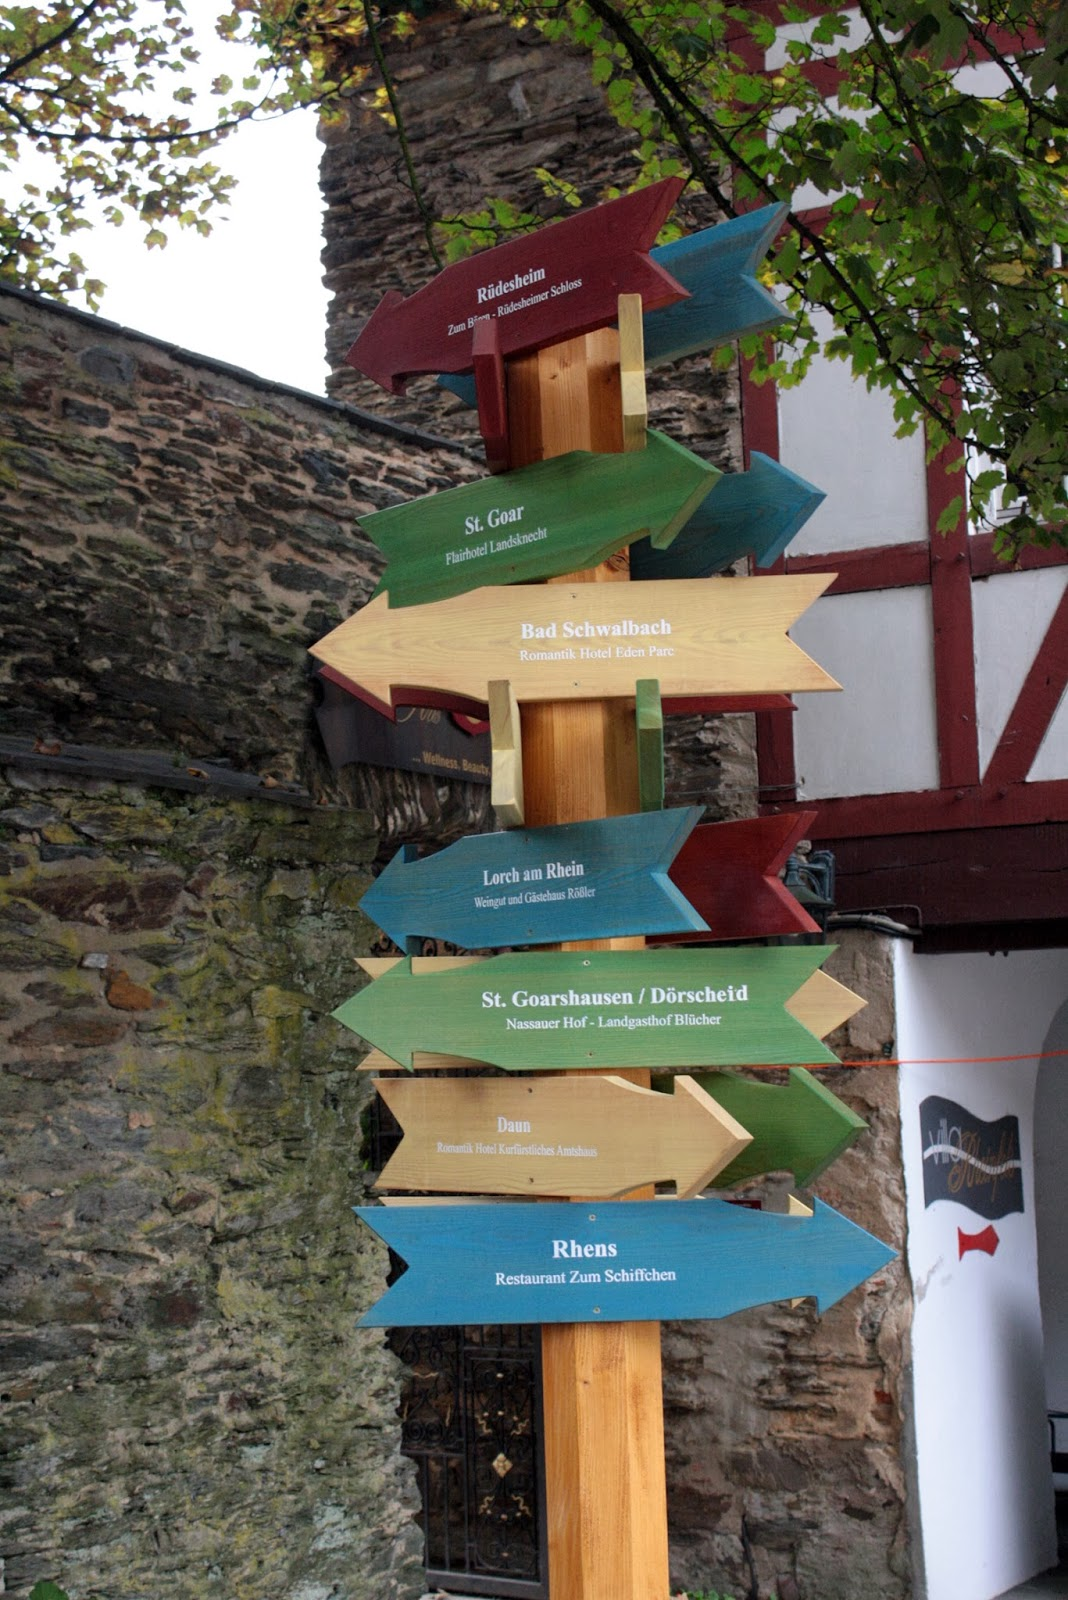 Sign post at Castle Rheinfels - The Tipsy Terrier blog